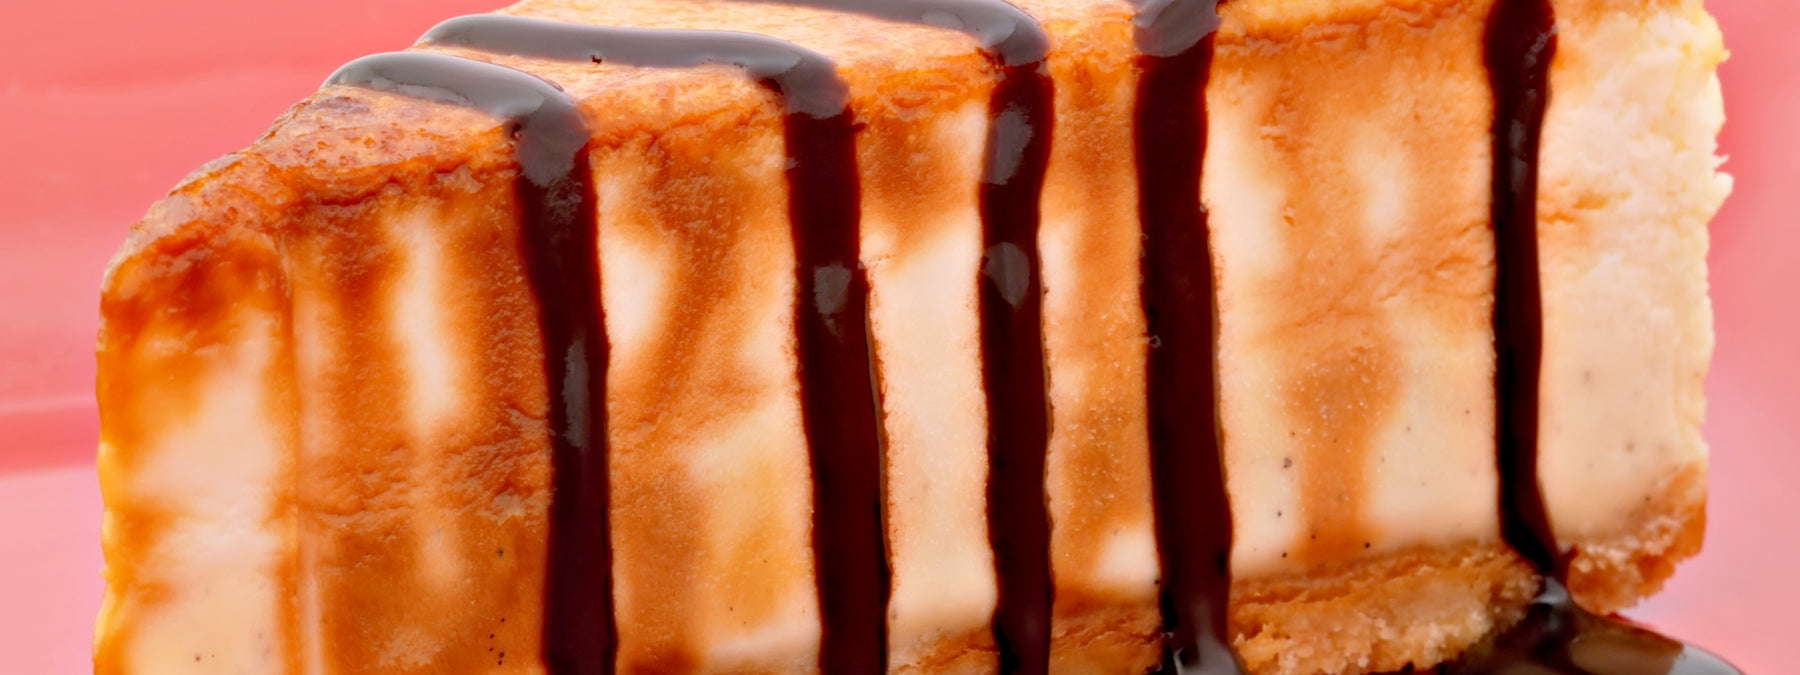 High Protein Caramel Cake Recipe With a Chocolate Cream Cheese Filling